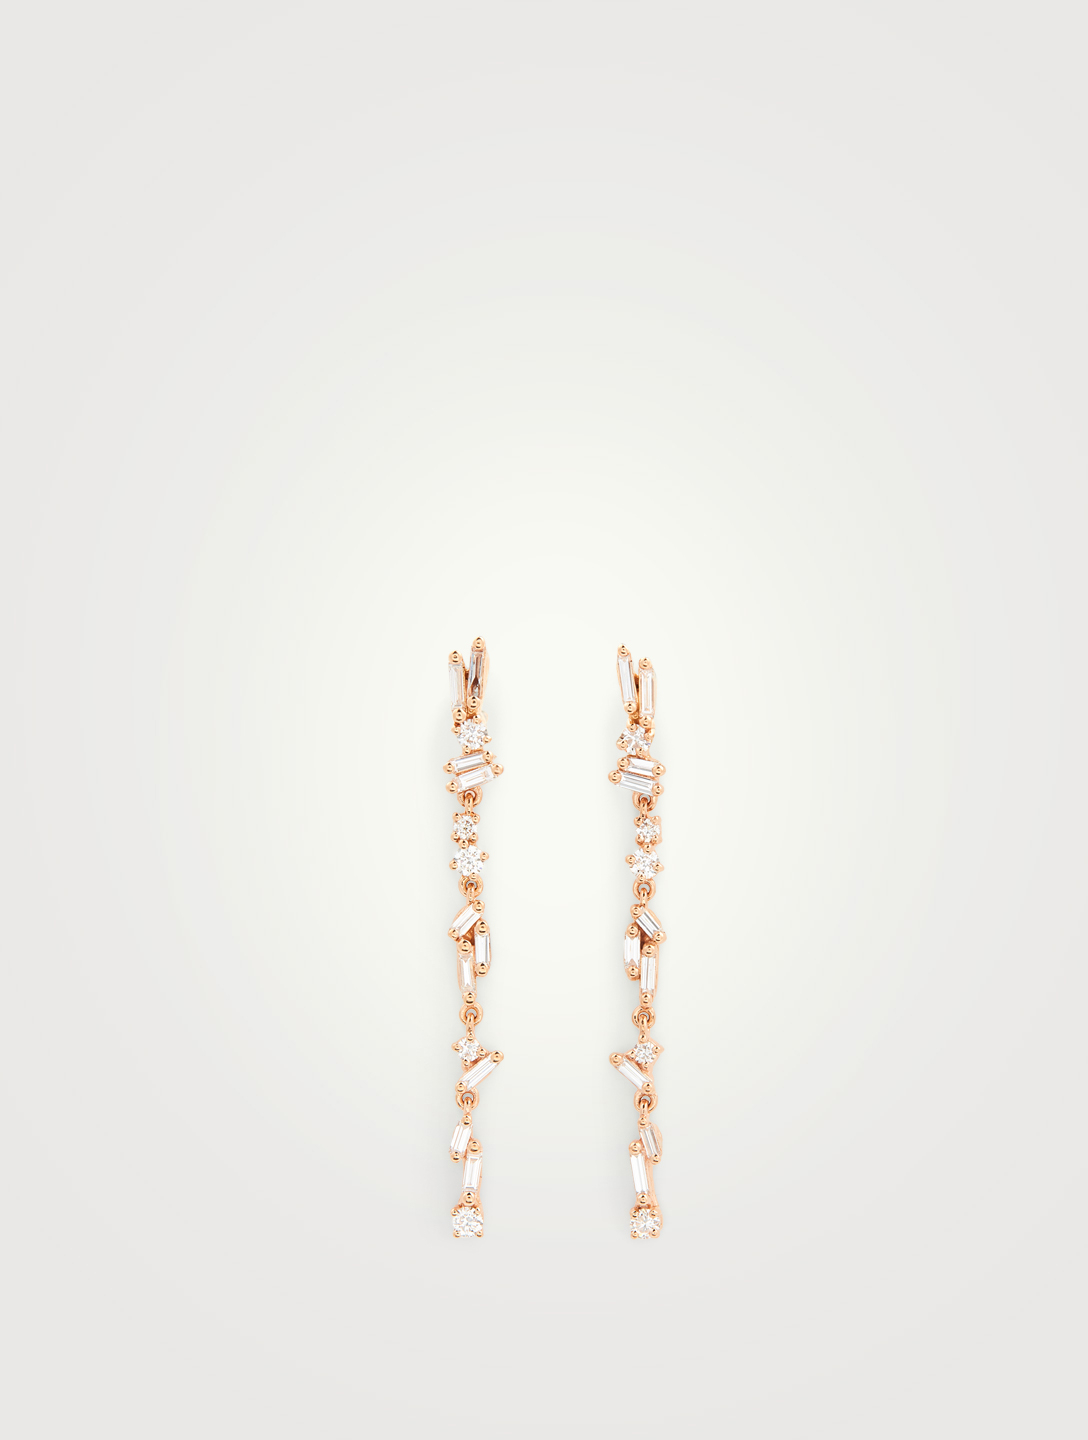 SUZANNE KALAN Fireworks 18K Rose Gold Dangle Earrings With Diamonds Women's Metallic